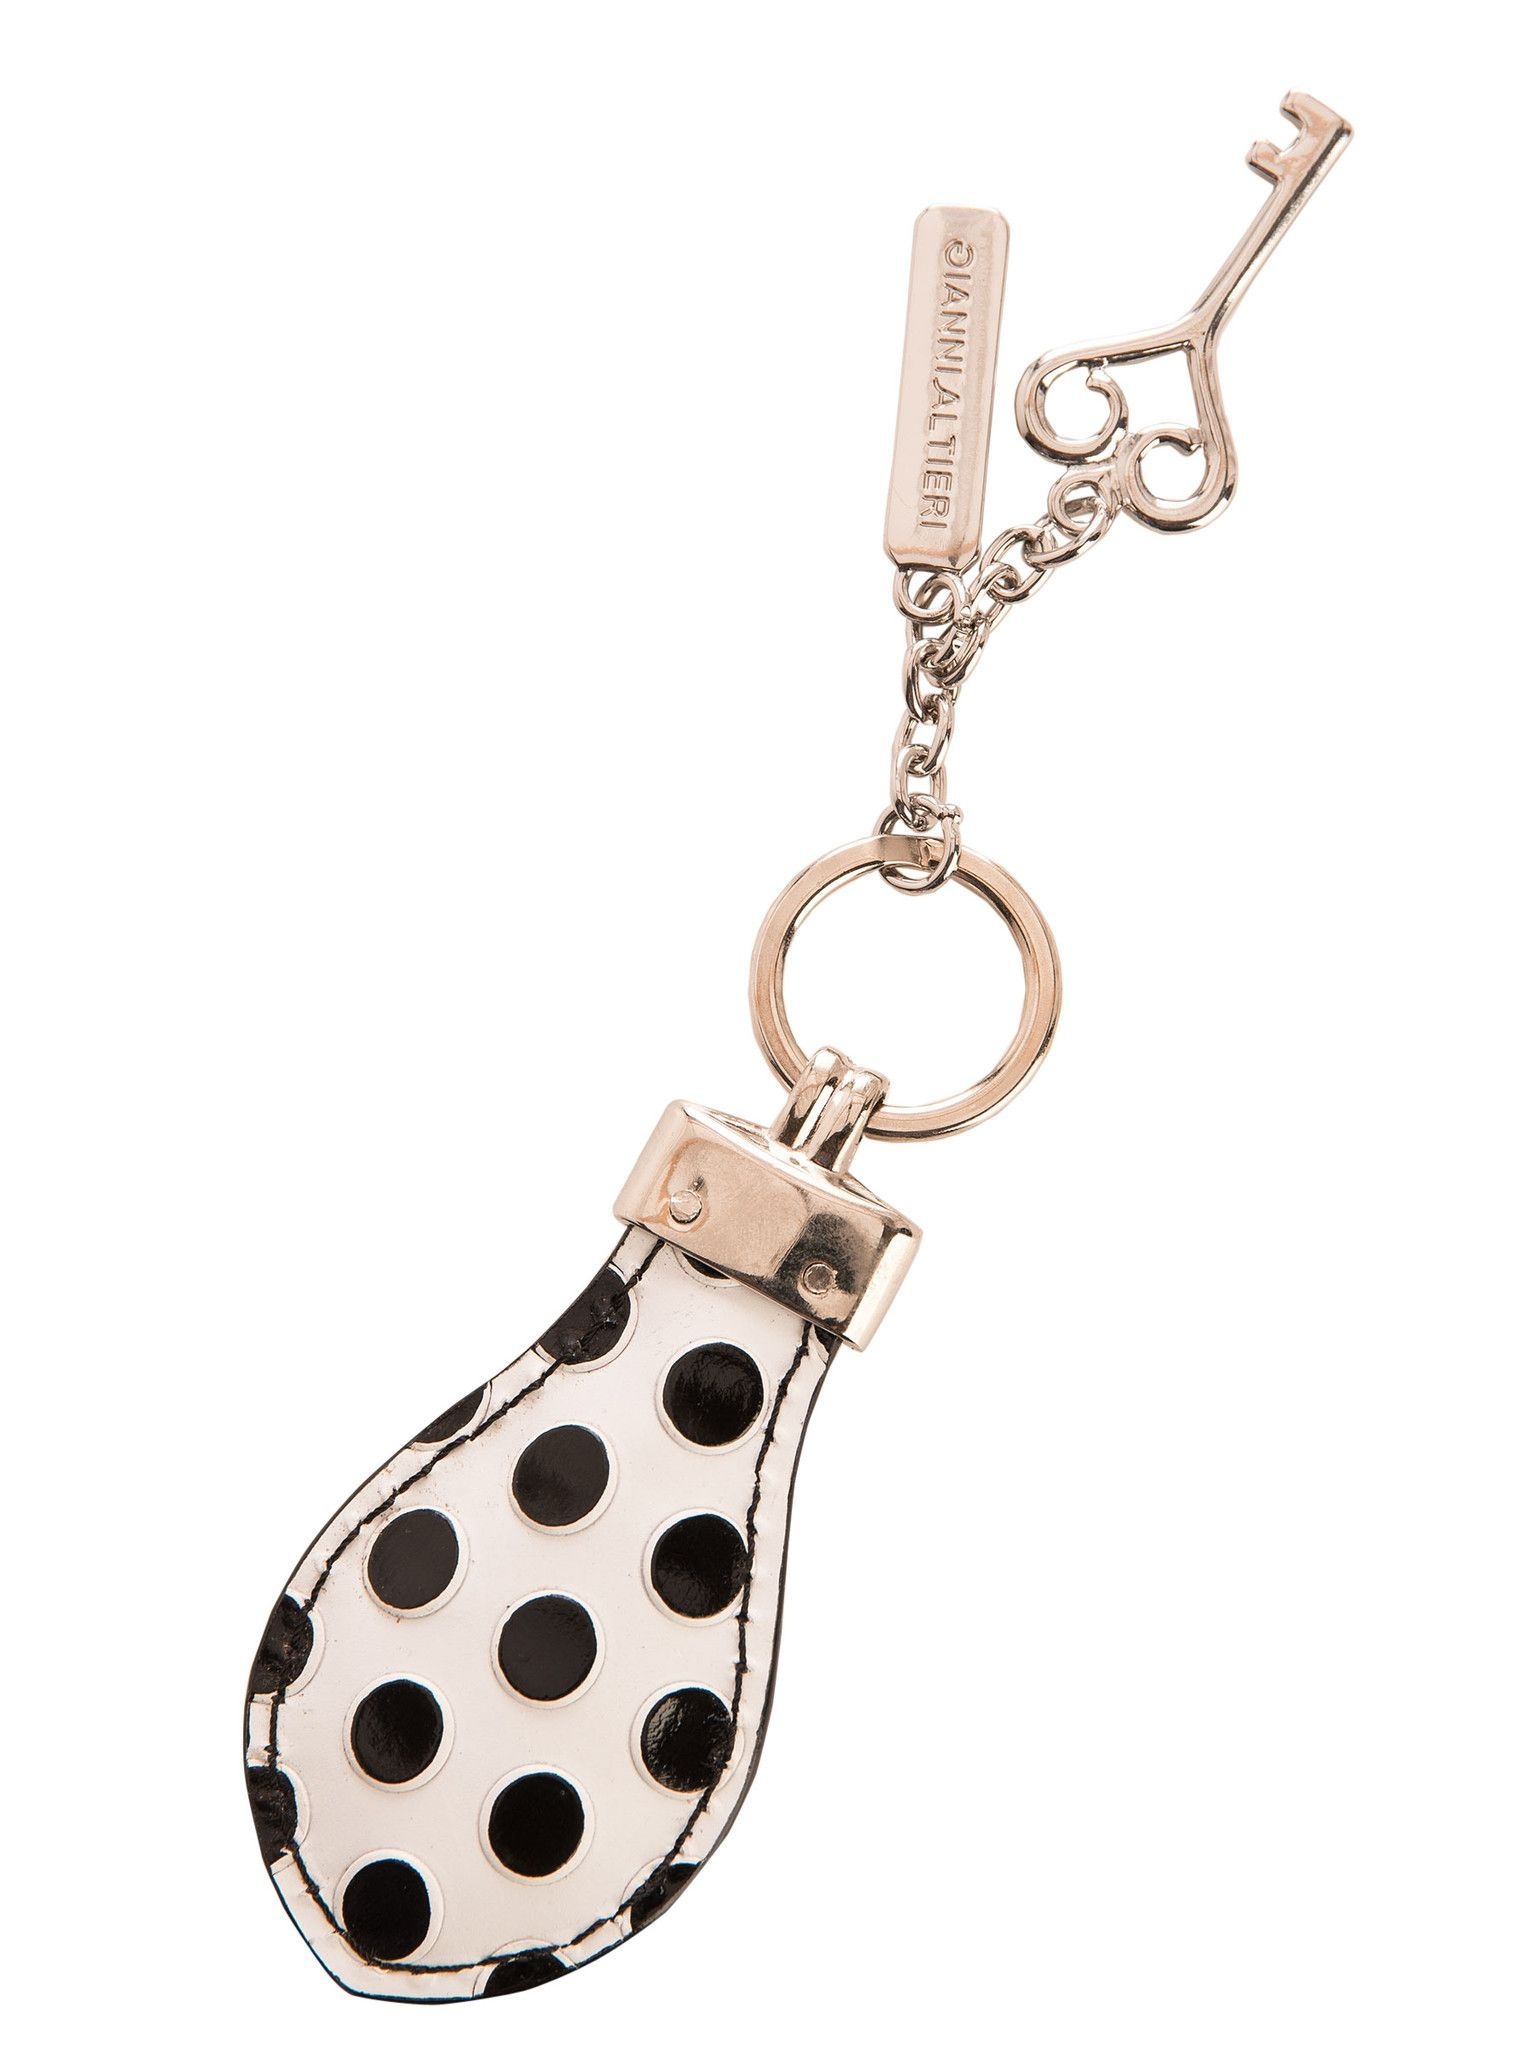 Teardrop Hand Painted Leather Keychain-White Dots